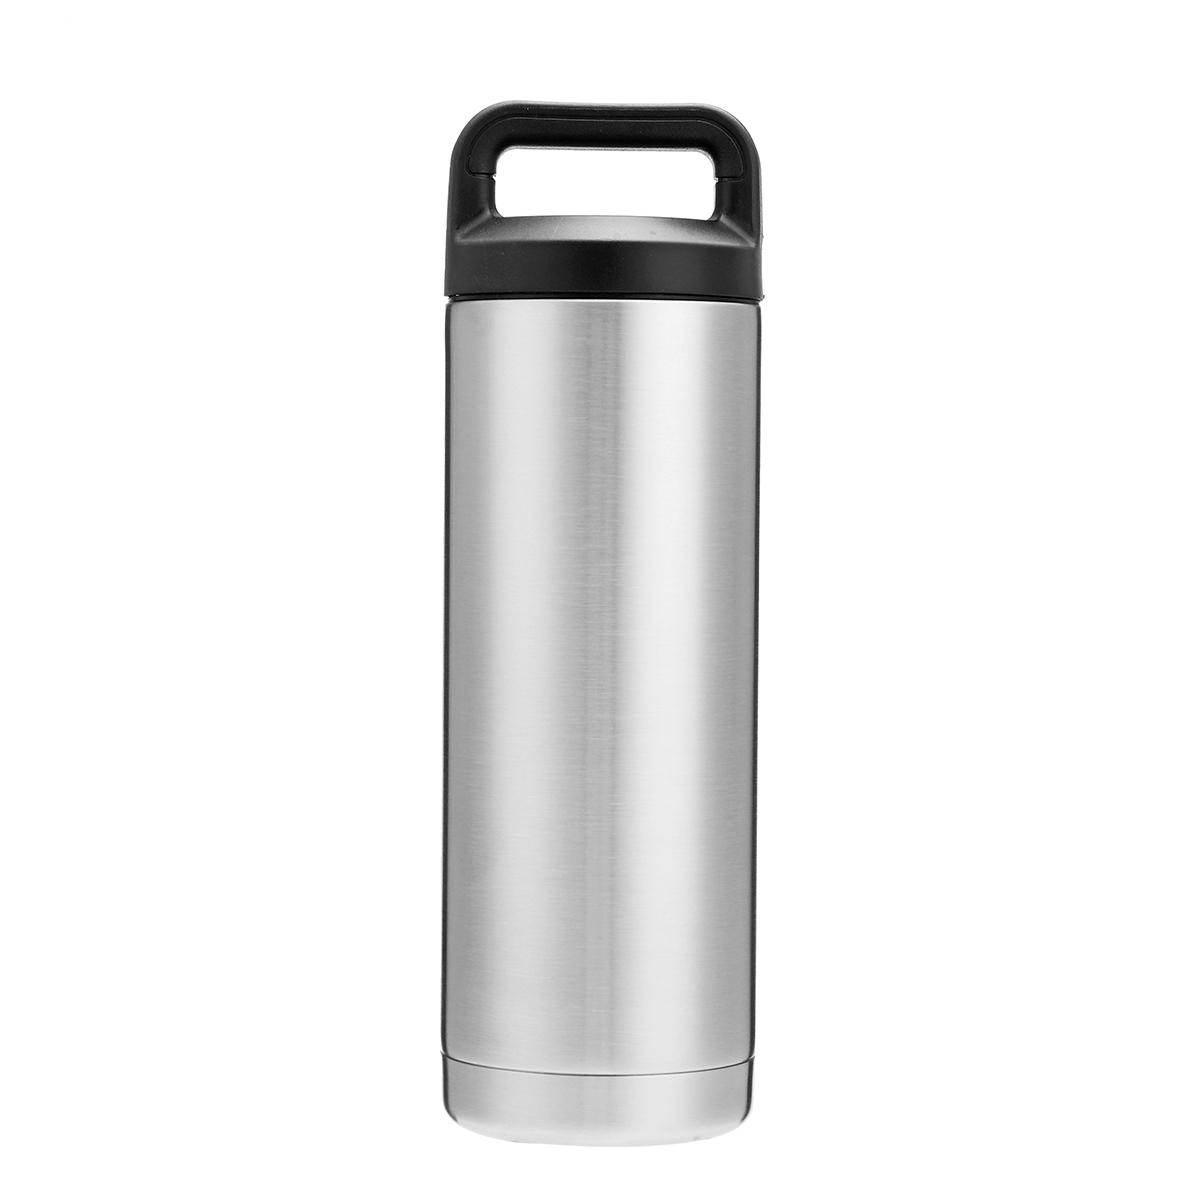 7c7e9259248 18oz 36oz 64oz Stainless Steel Water Bottle Mug Vacuum Flask Double Wall  Insulated Thermos Cooling Beer Cup